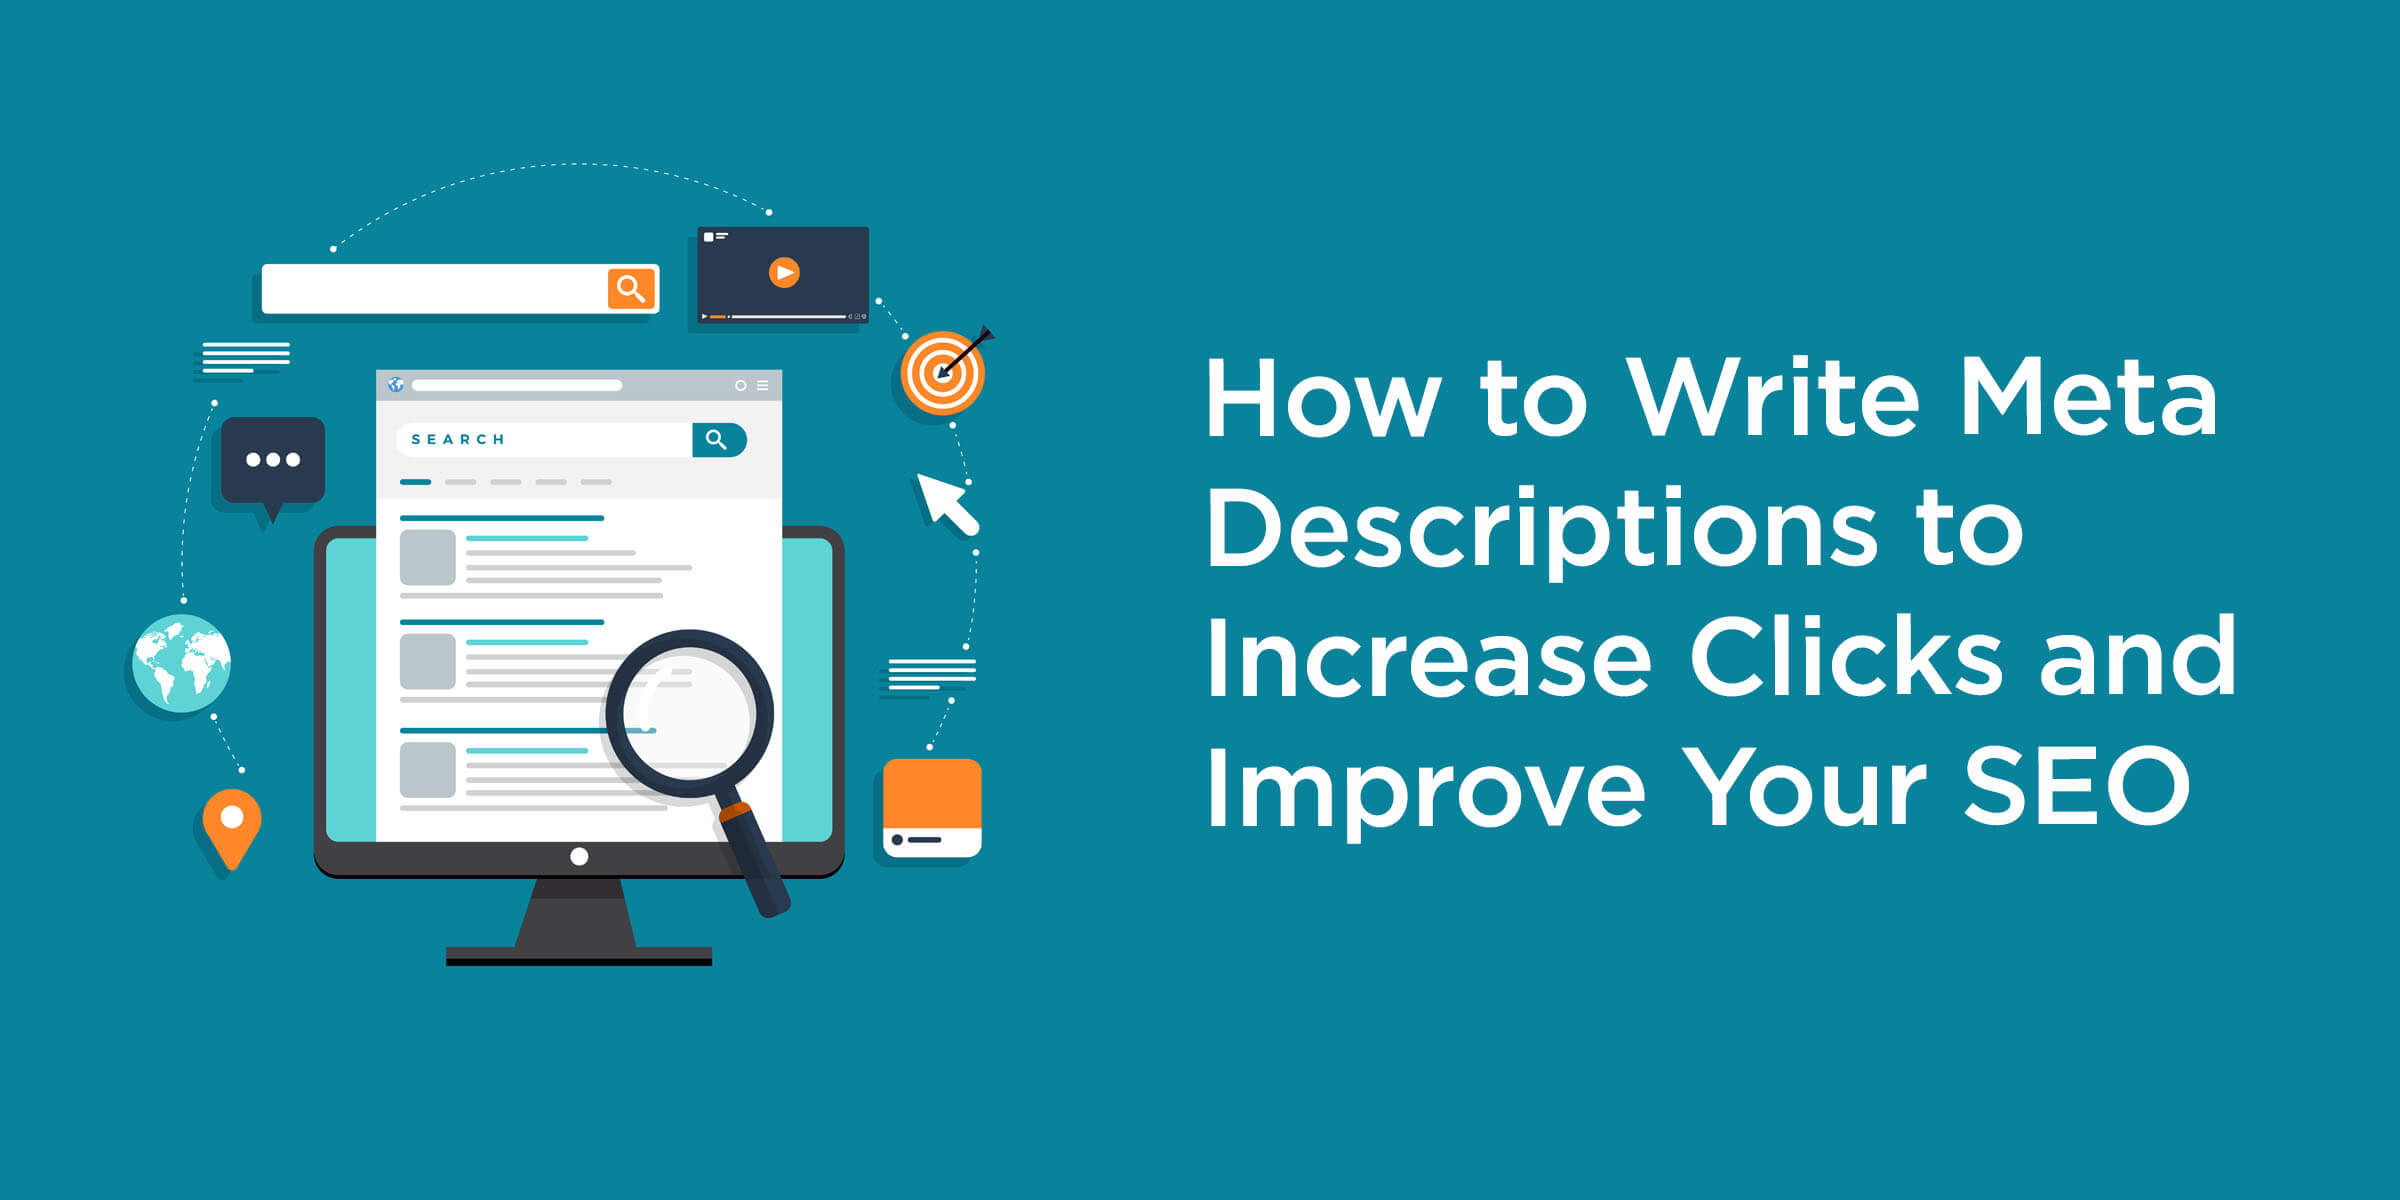 How to Write Meta Descriptions to Increase Clicks and Improve Your SEO – McBreen Marketing